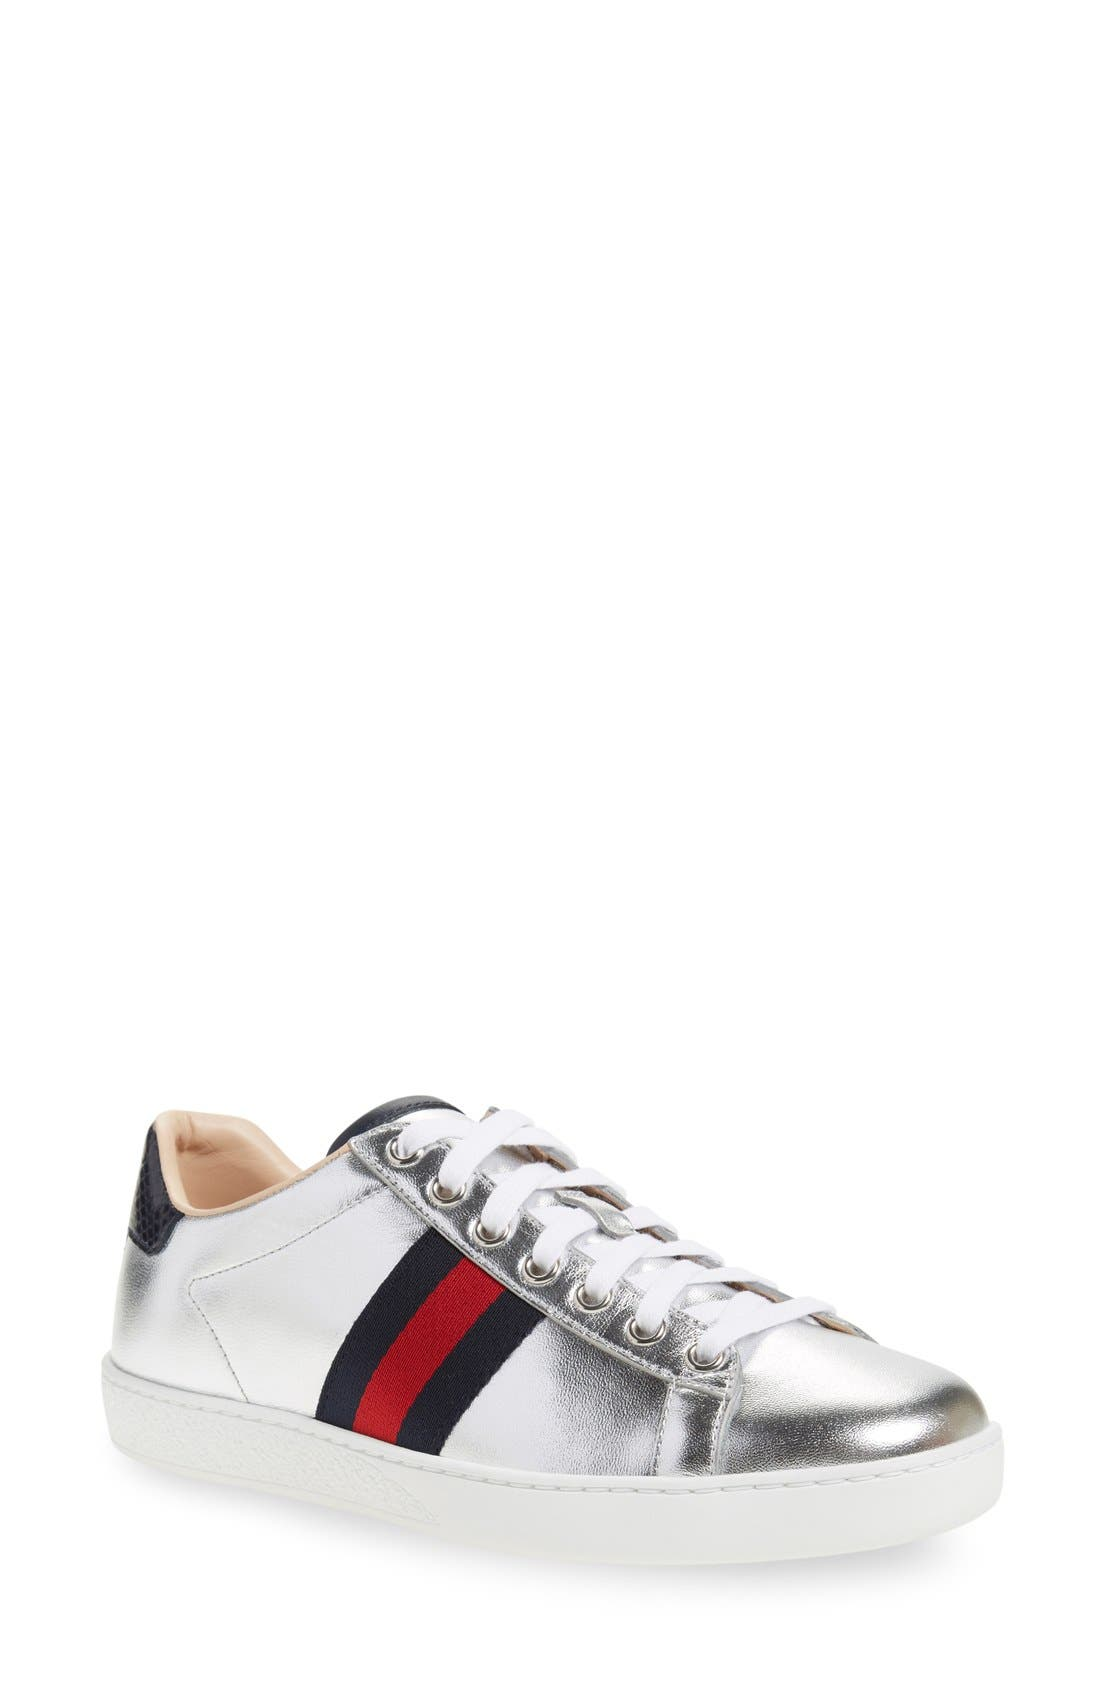 GUCCI 'New Ace' Metallic Low Top Sneaker, Main, color, 040